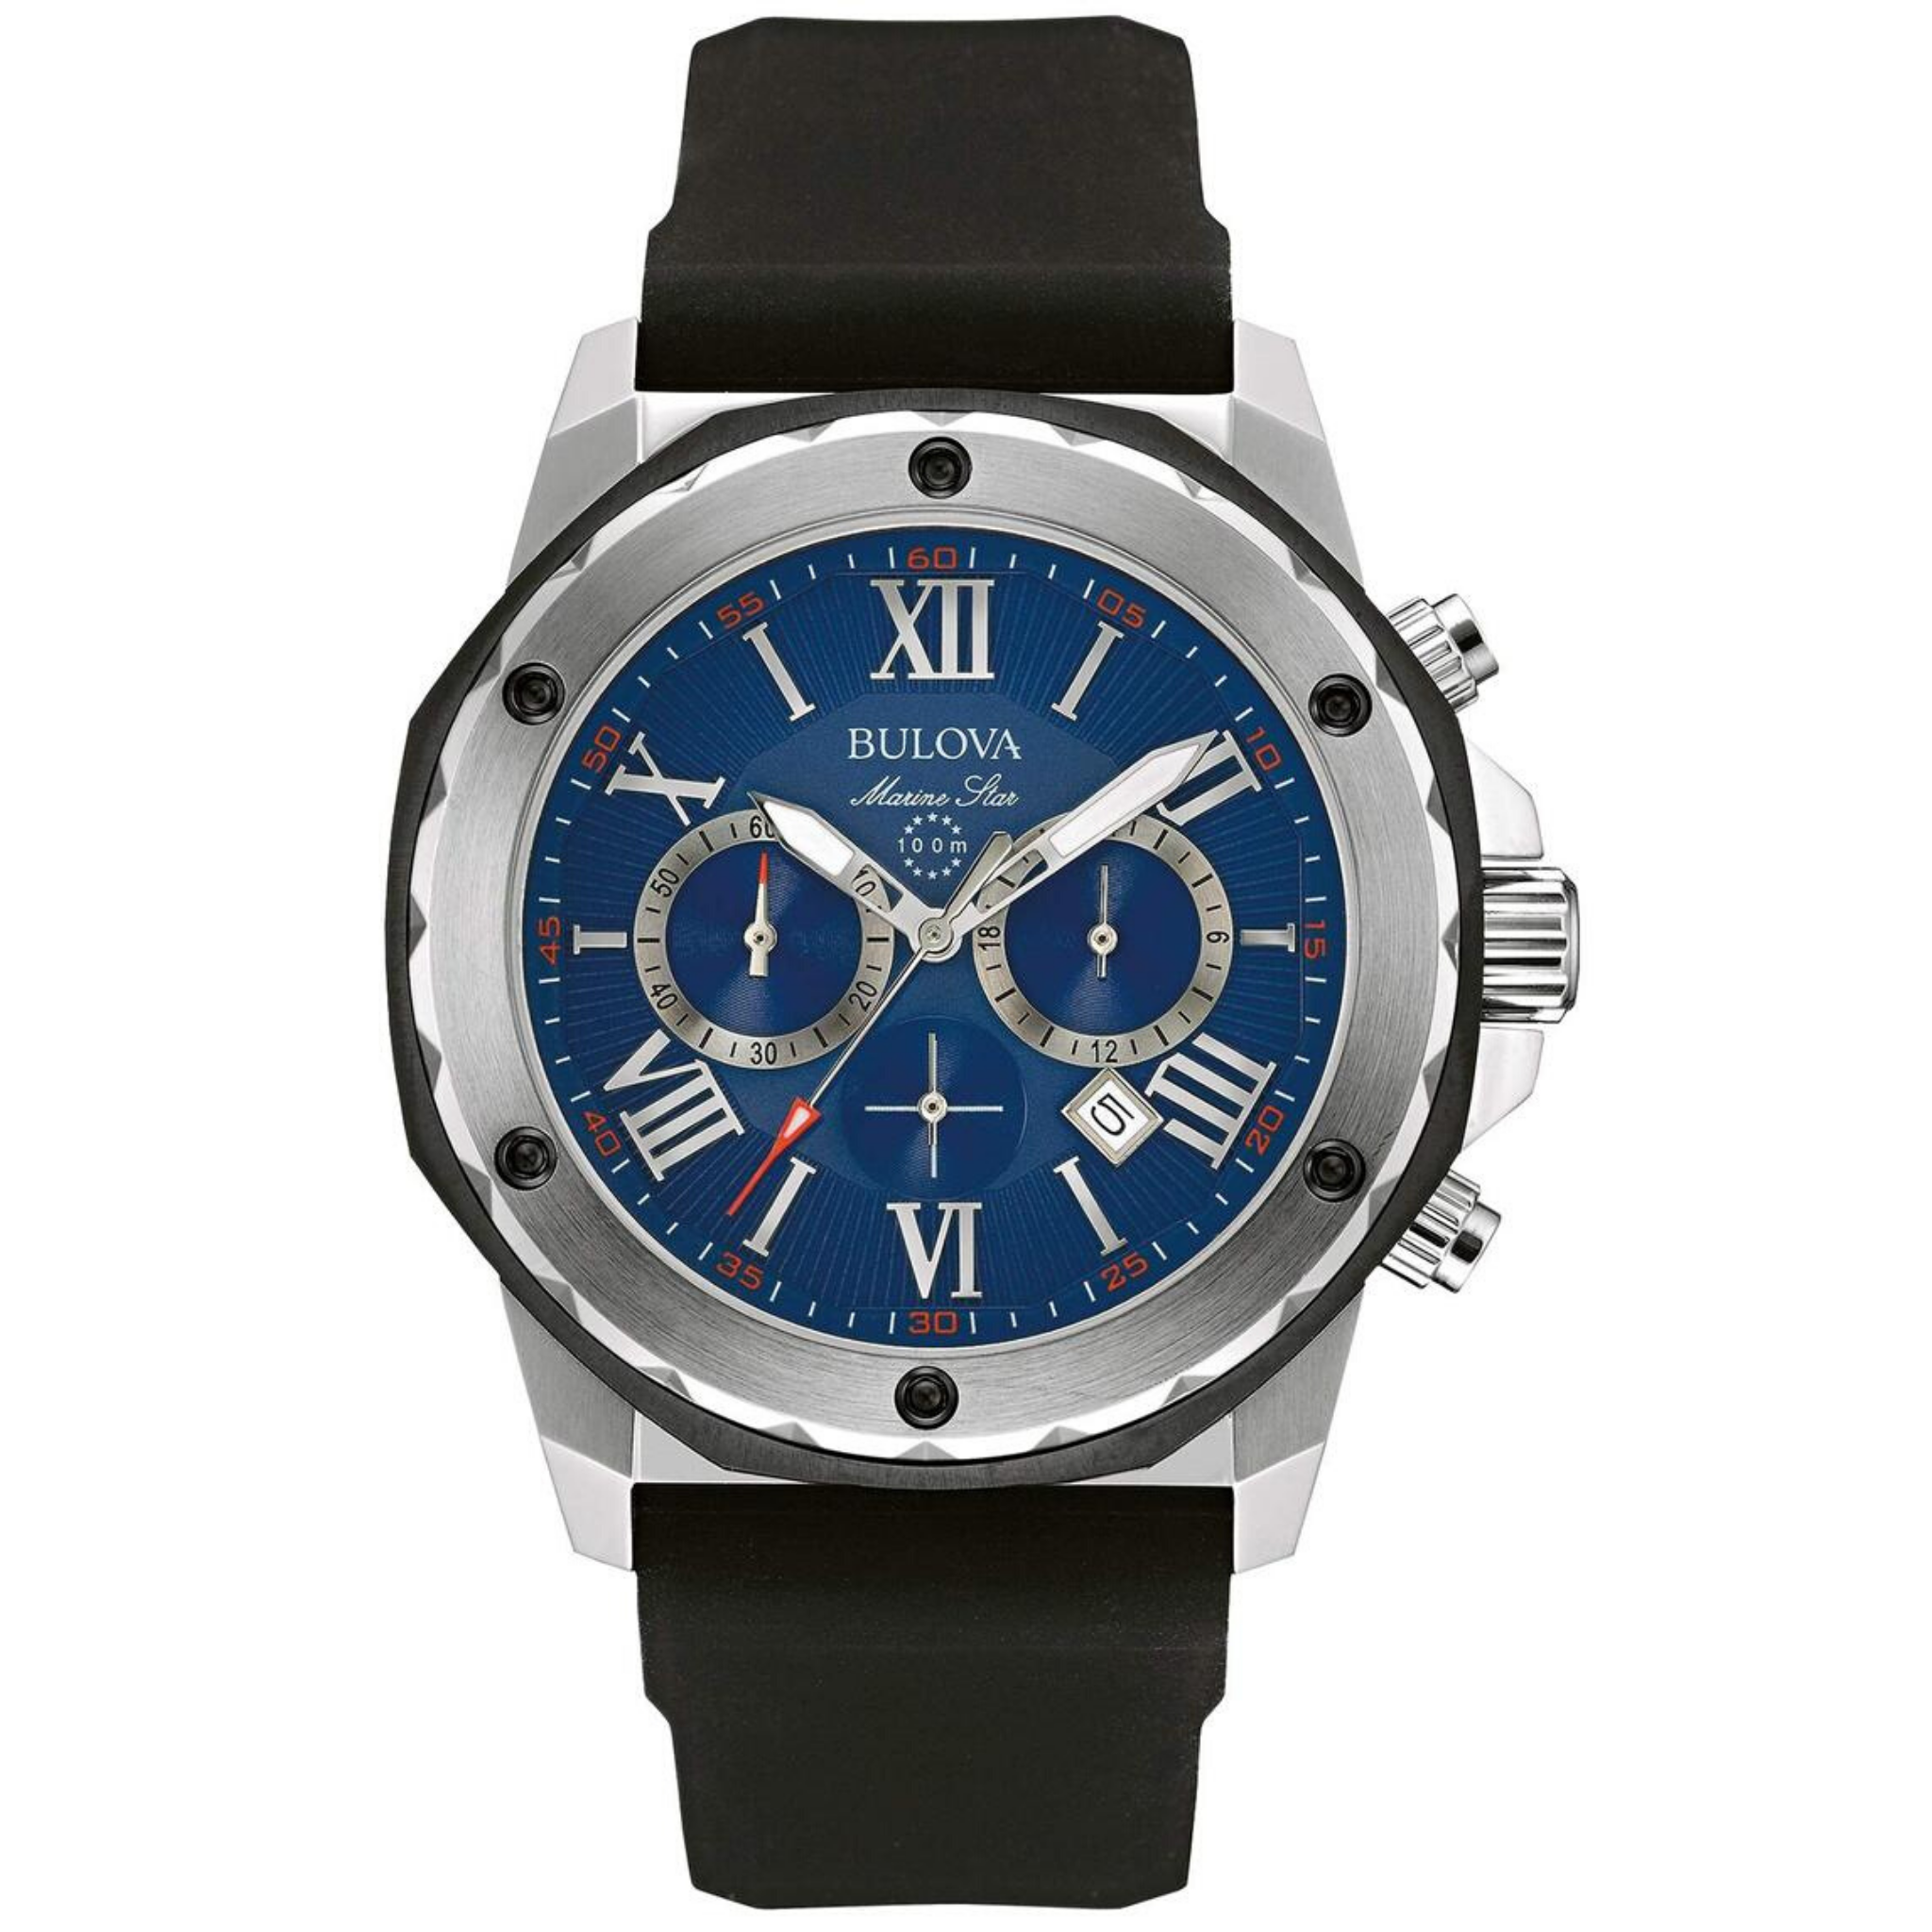 Bulova Men's Designer Chronograph Watch Rubber Strap - Water Resistant Blue Dial Marine Star 98B258